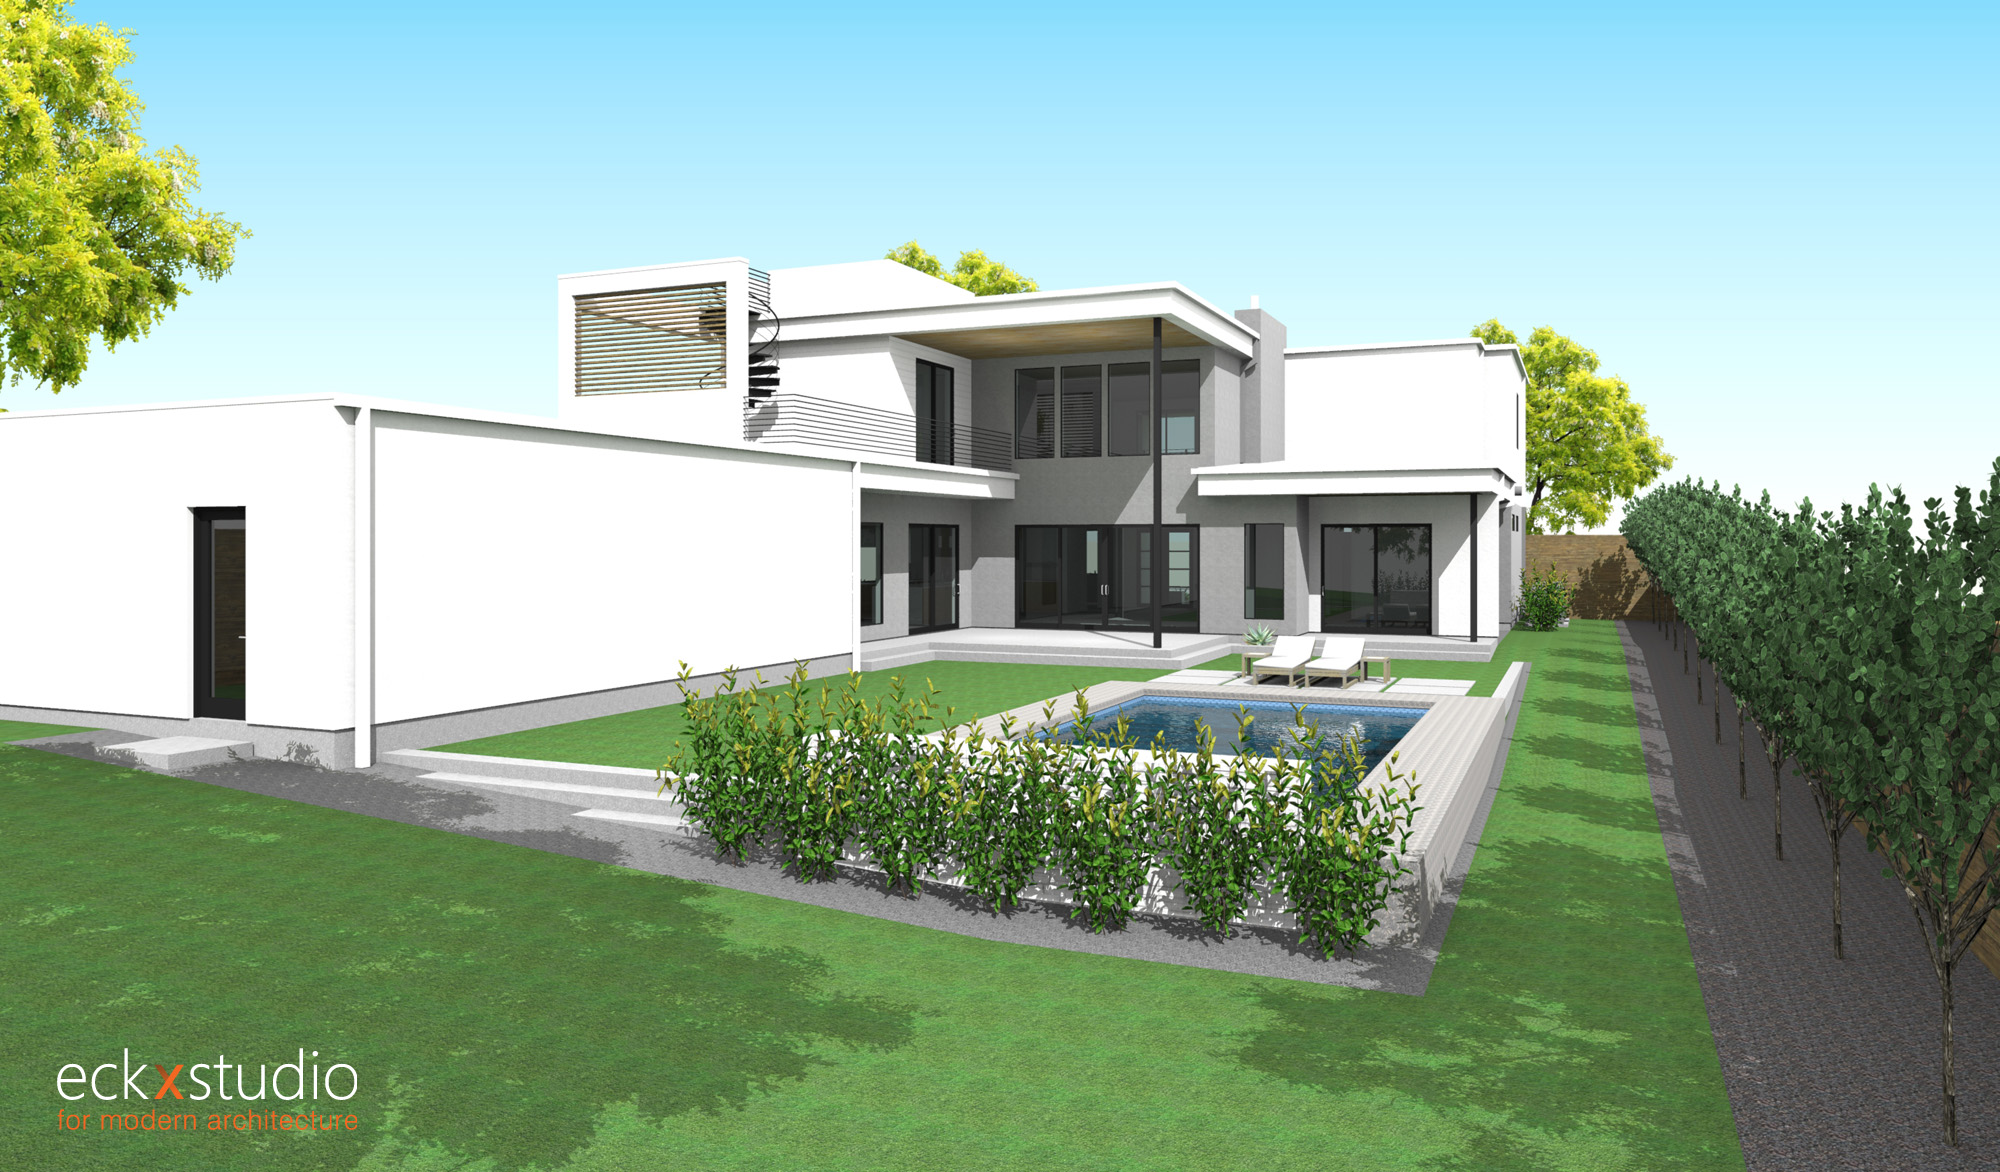 Oriole residence rear elevation image